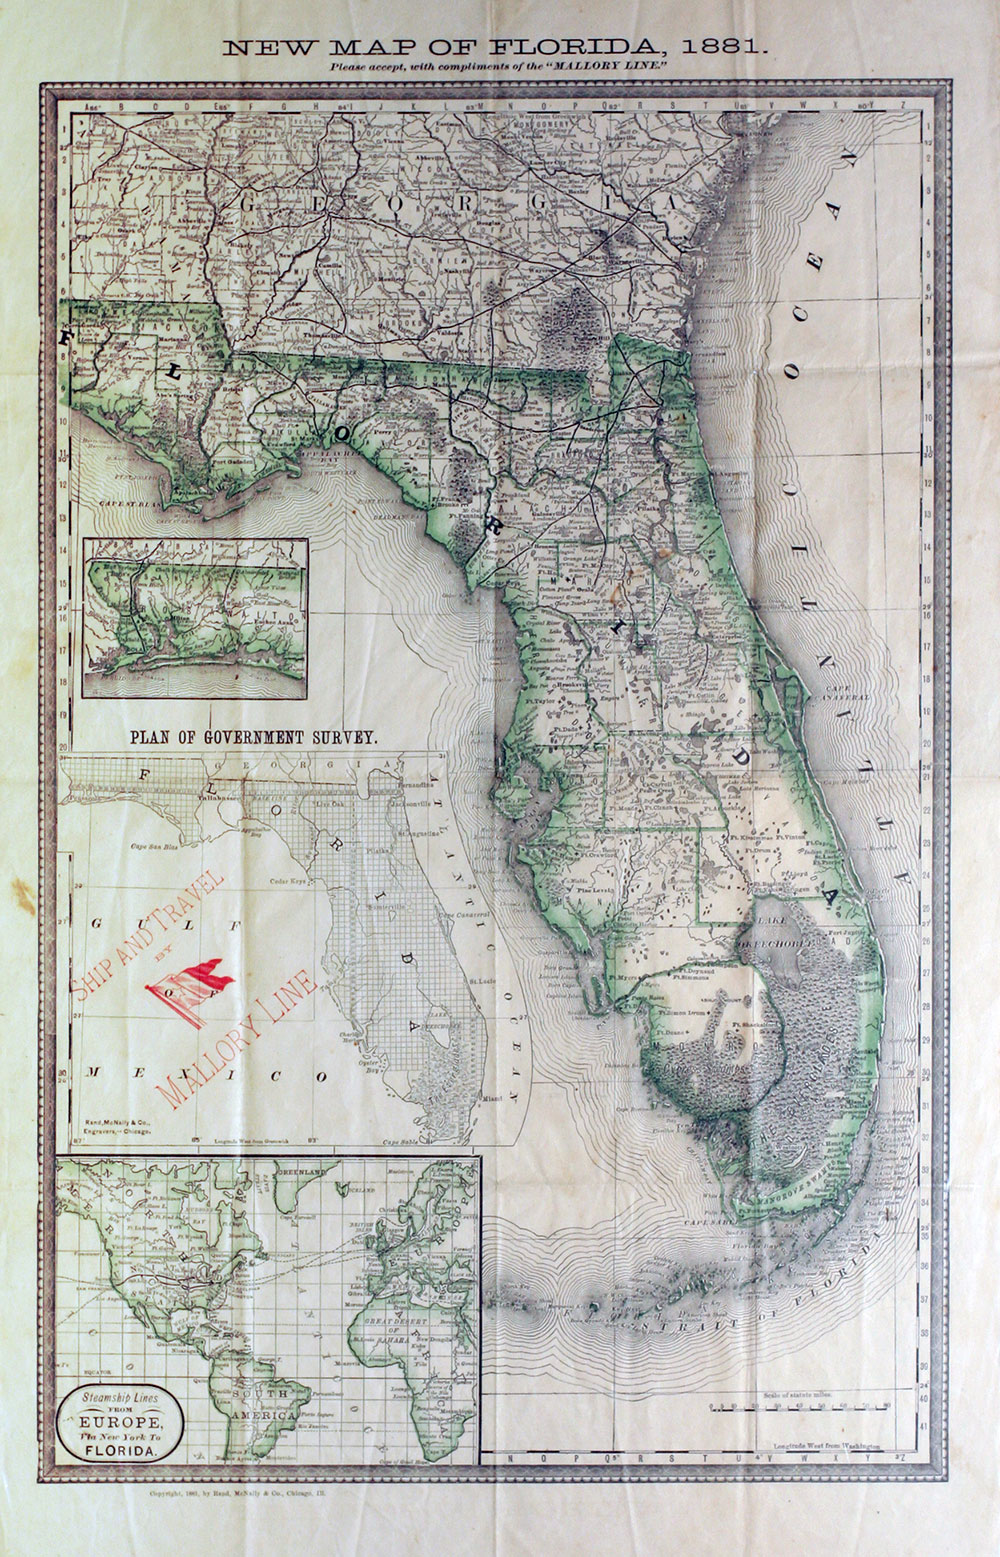 Florida Railroad Map.New Map Of Florida 1881 Florida Railroad